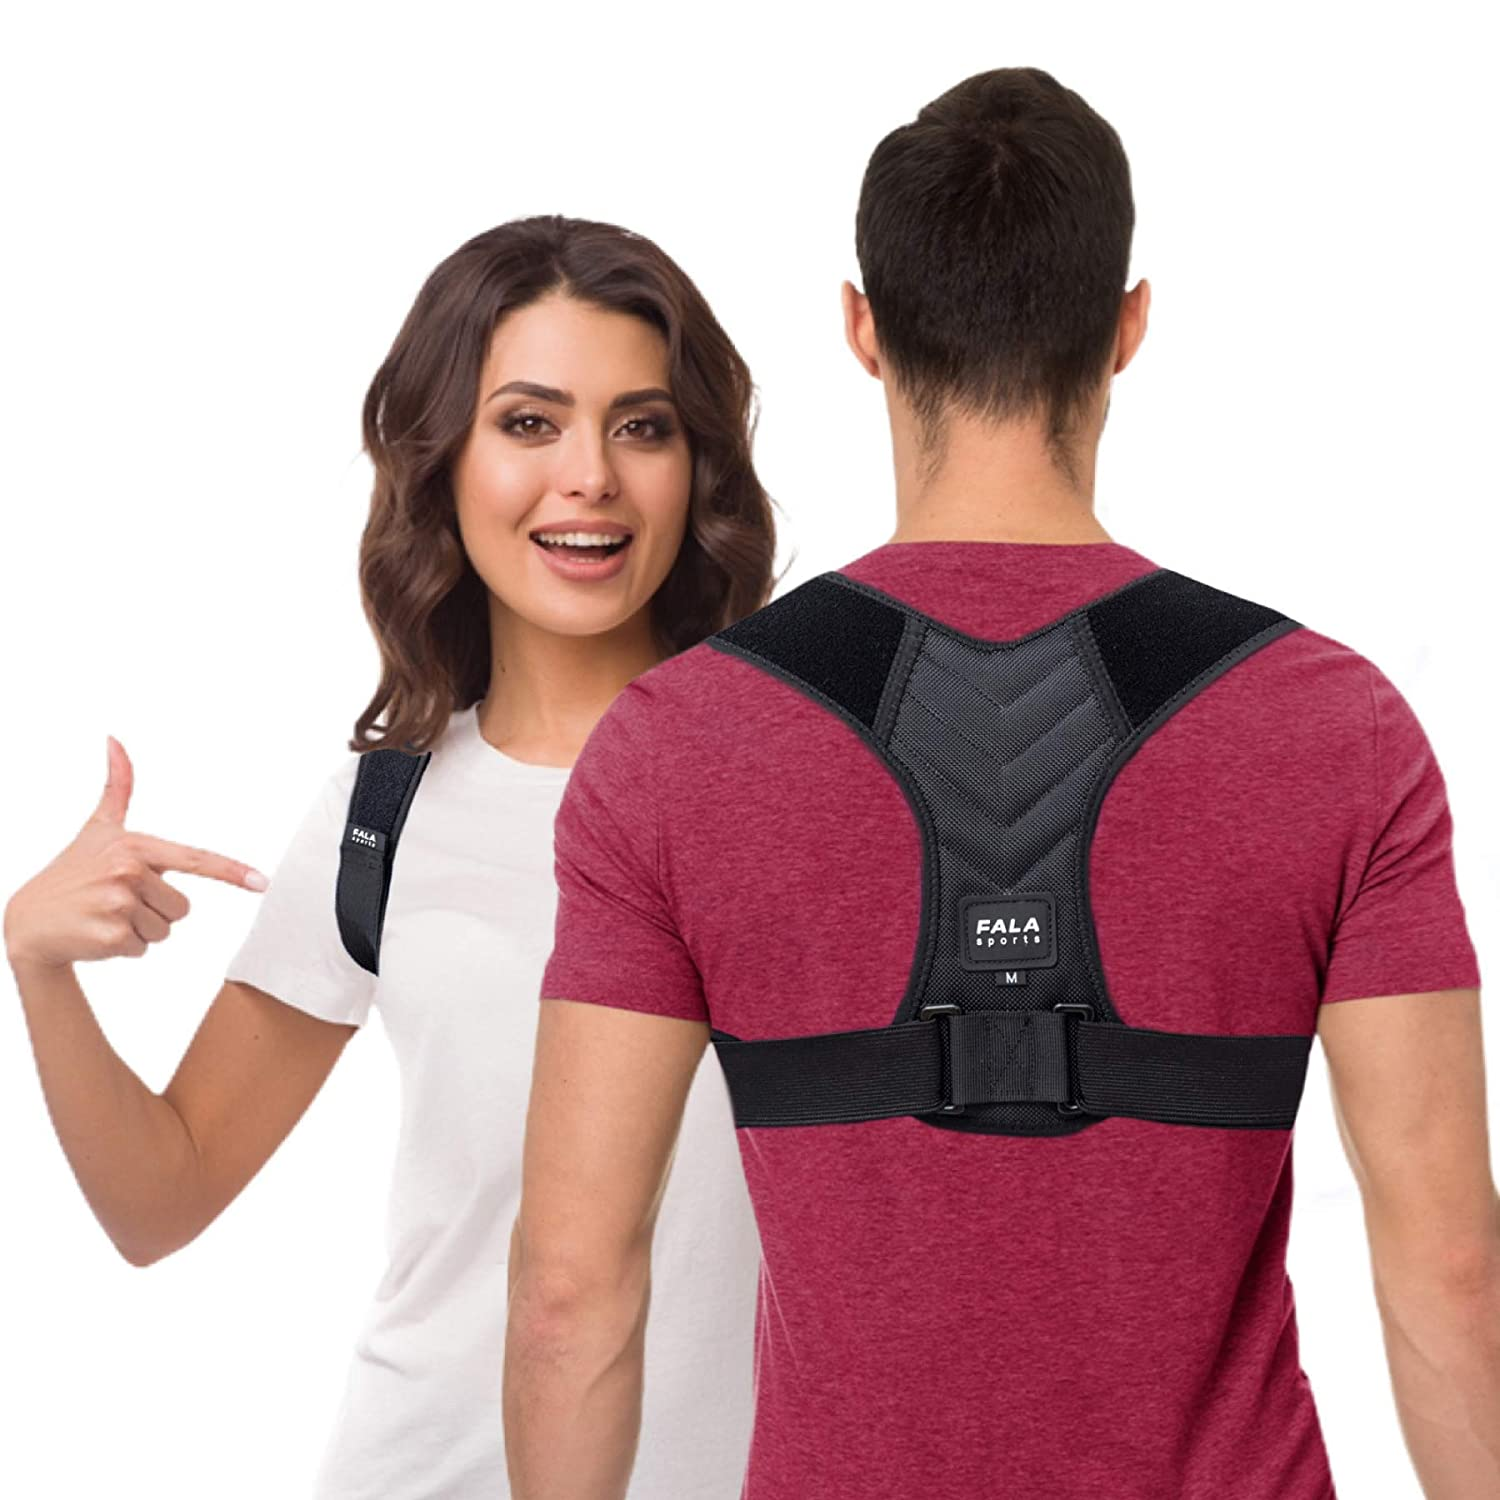 Buy Fala Sports Posture Corrector for Women and Men – Adjustable Shoulder Brace for Neck and Upper Back Pain Relief – Correct Slouching and Hunching and Promote Straight Spine with Lumbar Support